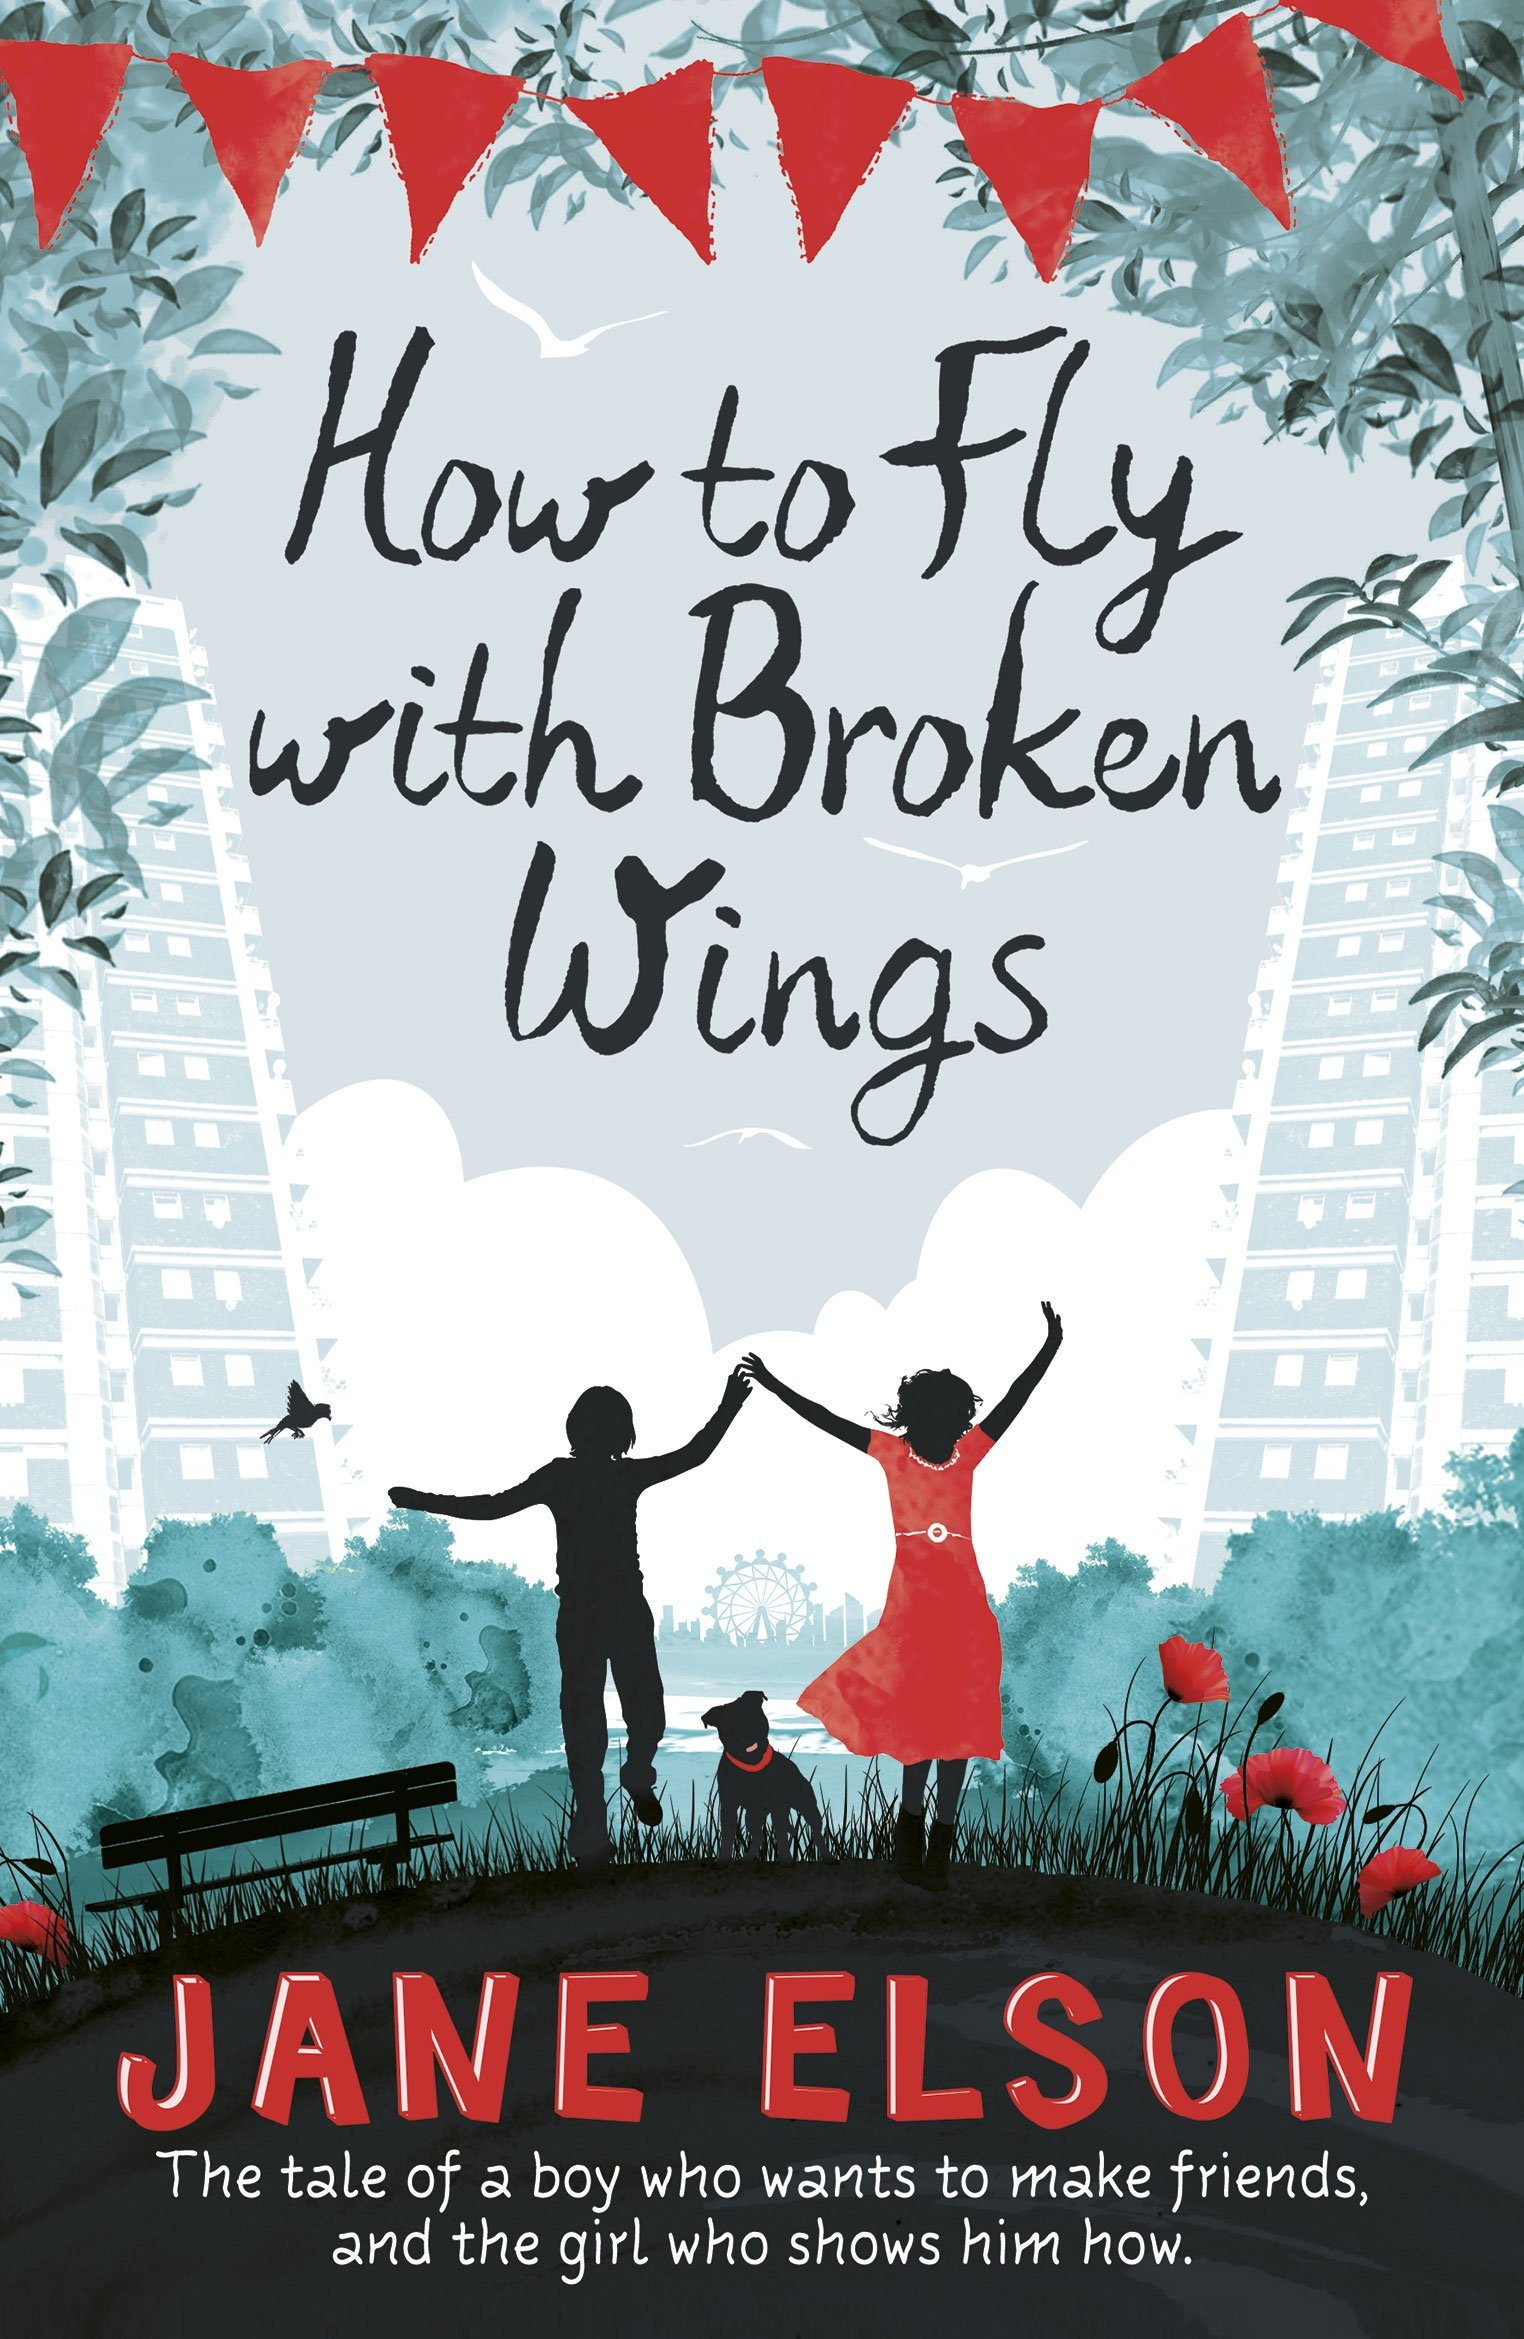 Book Cover: How to Fly with Broken Wings by Jane Elson